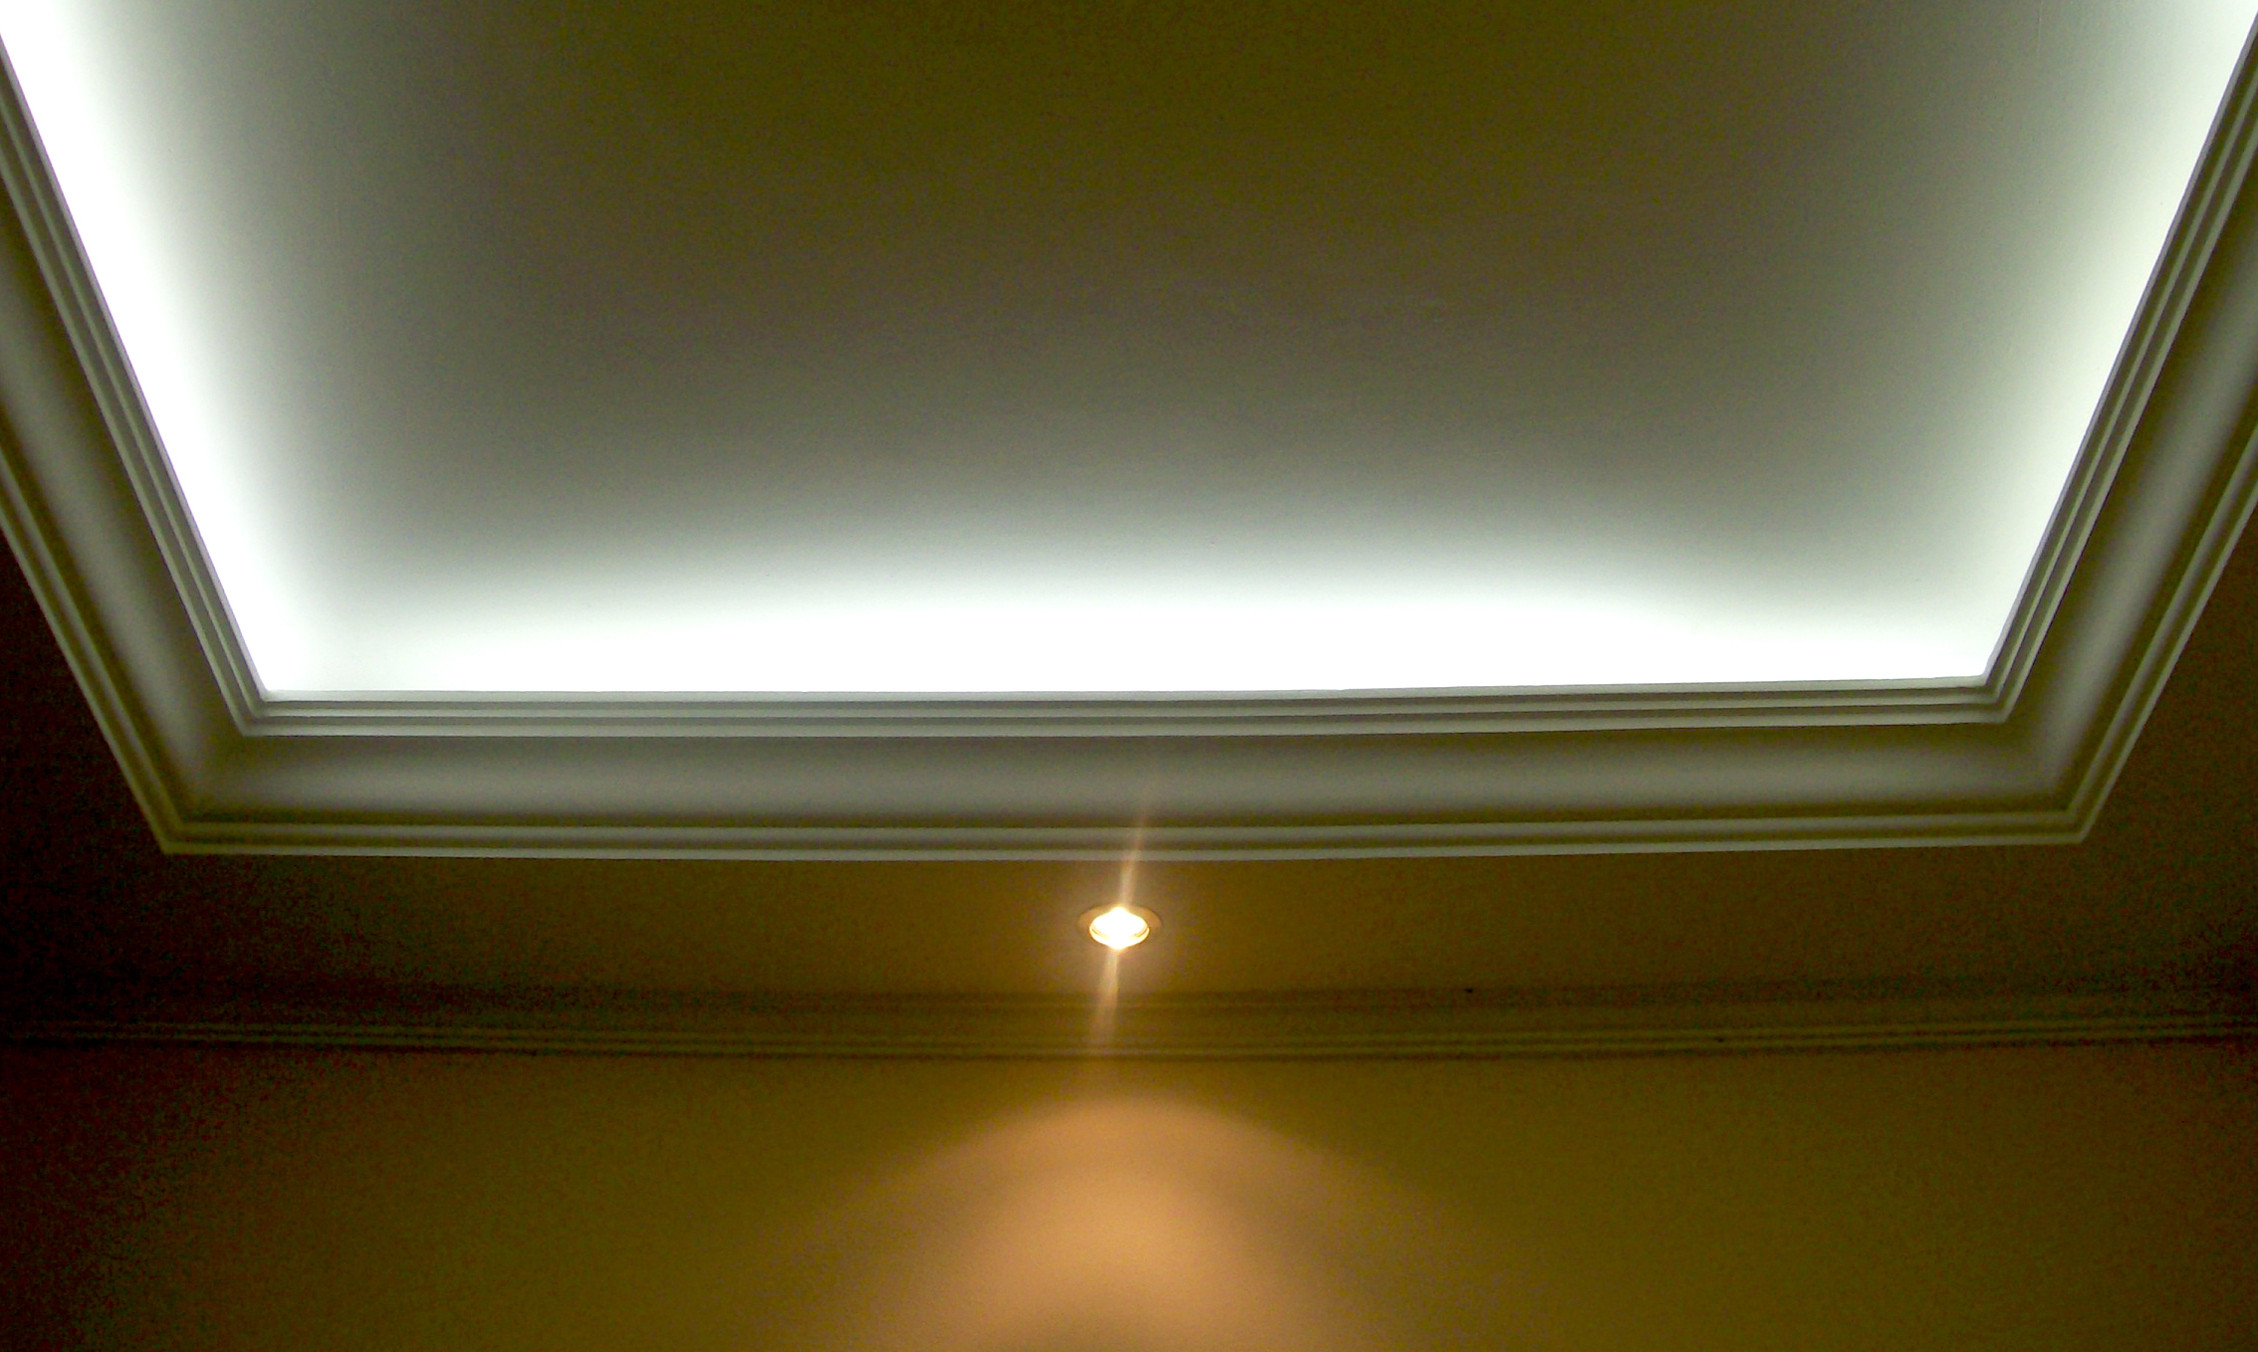 1o Reasons To Install Ceiling Recessed Lights Warisan Lighting Wiring A Can Light Why Use